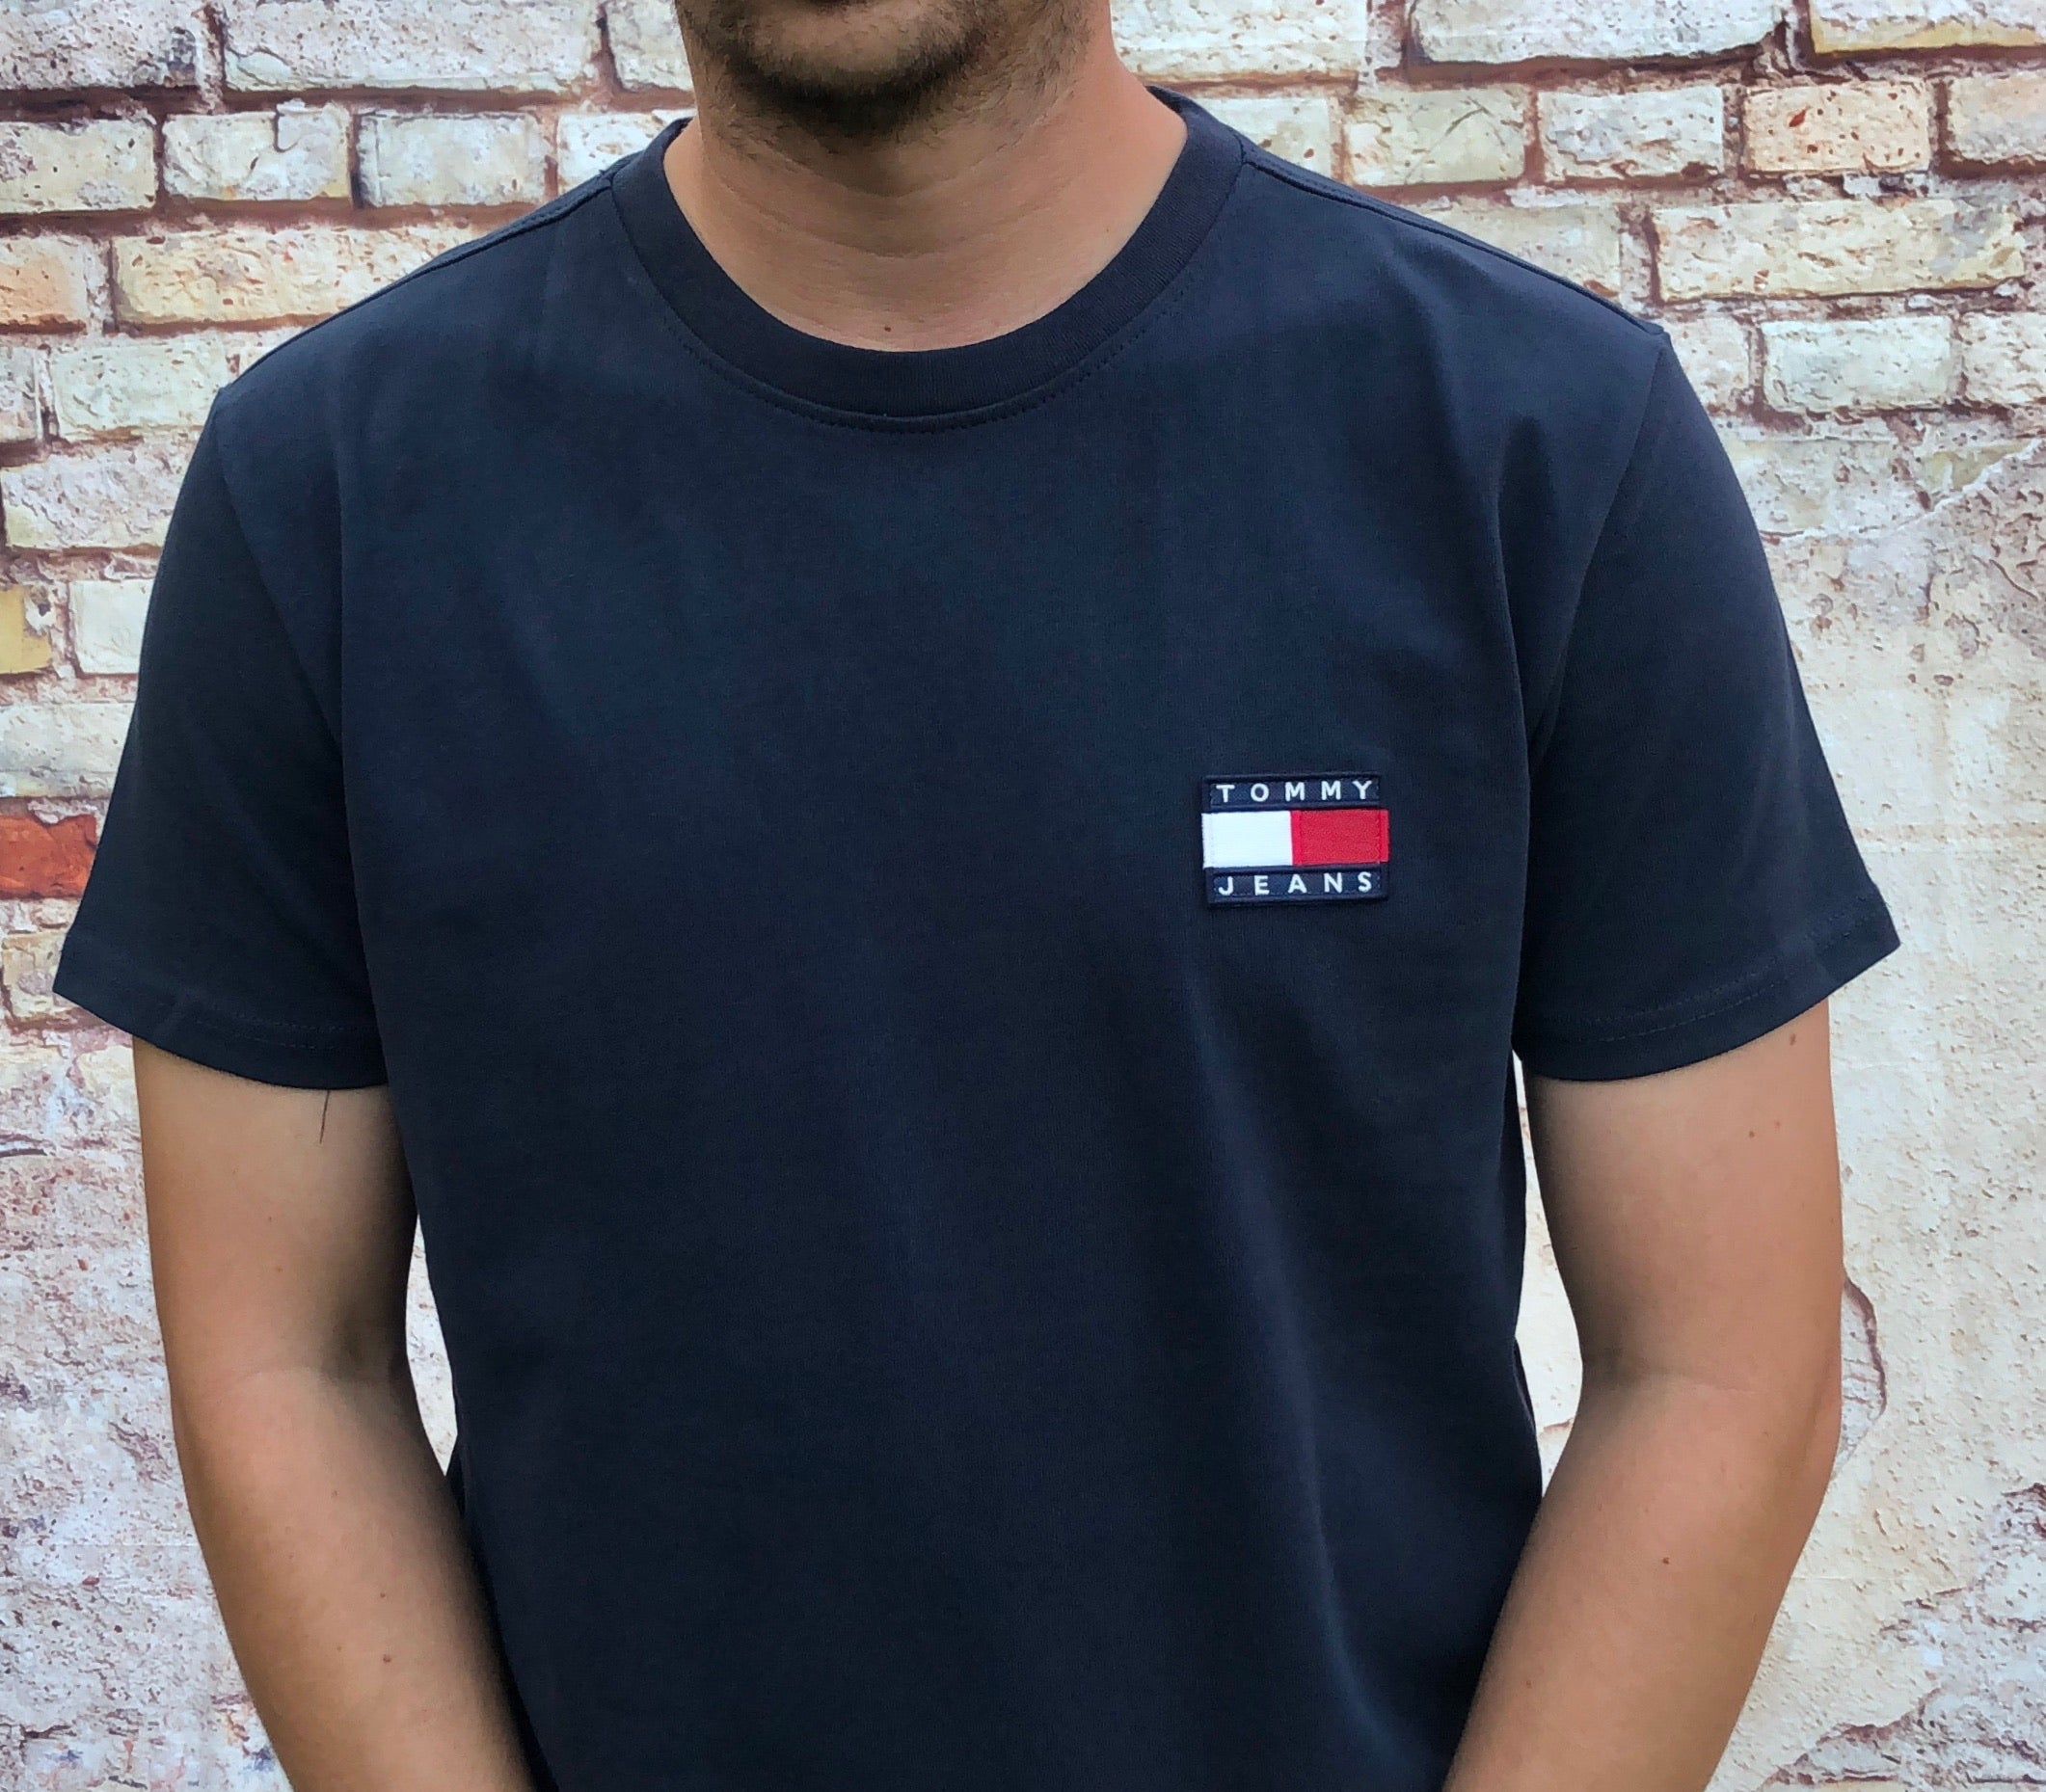 Navy Tommy Hilfiger Jeans round-neck tee shirt / Tshirt, with small, embroidered Tommy Jeans logo on the chest